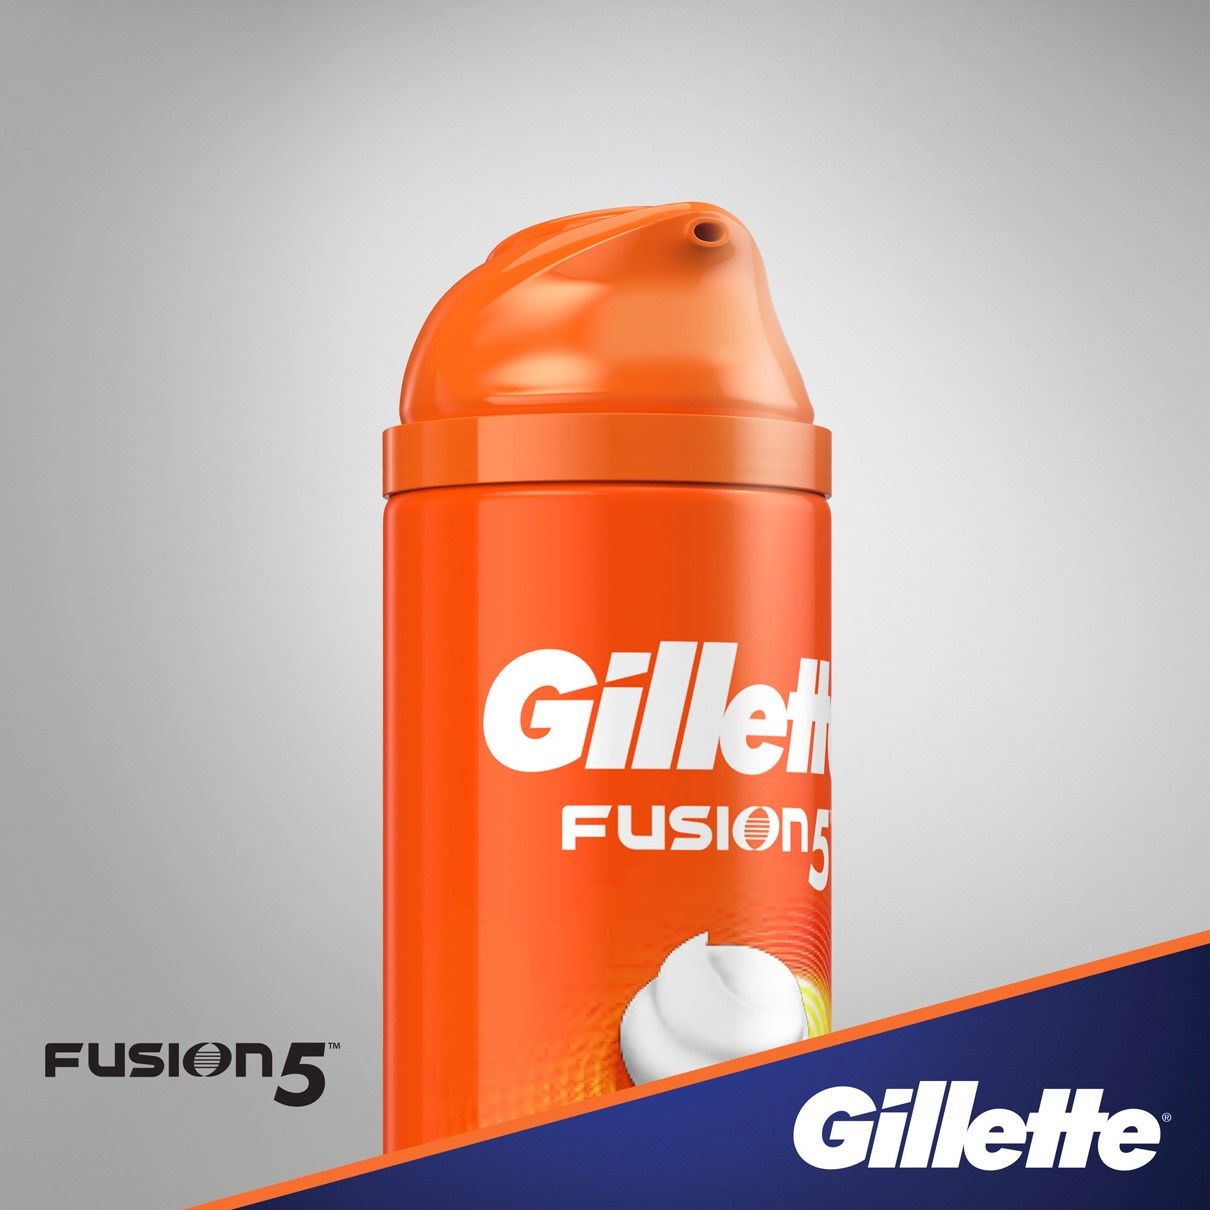 Gillette Fusion5 Ultra Sensitive Shave Foam